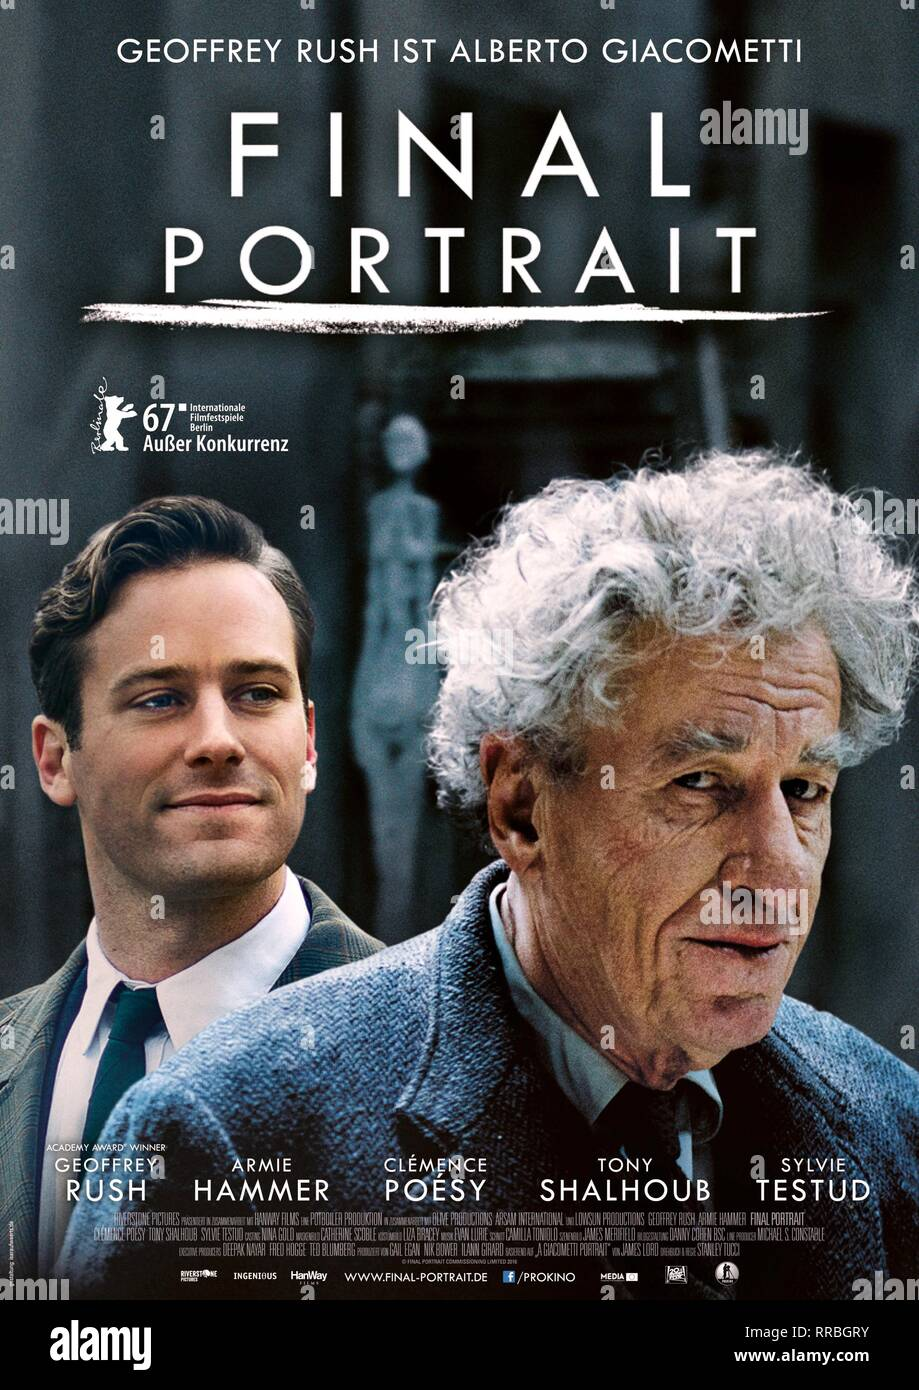 FINAL PORTRAIT, ARMIE HAMMER , GEOFFREY RUSH POSTER, 2017 - Stock Image